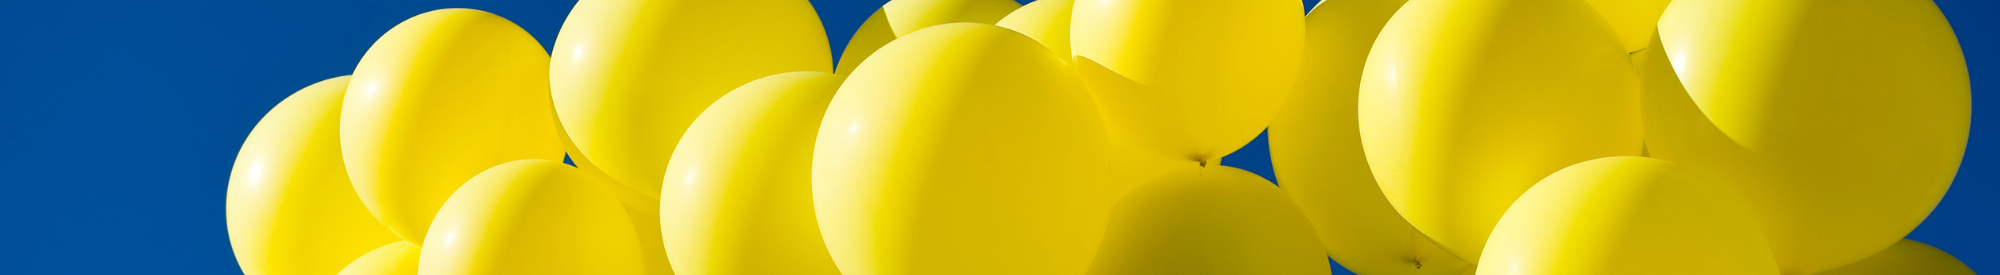 A group of yellow balloons in the sunshine